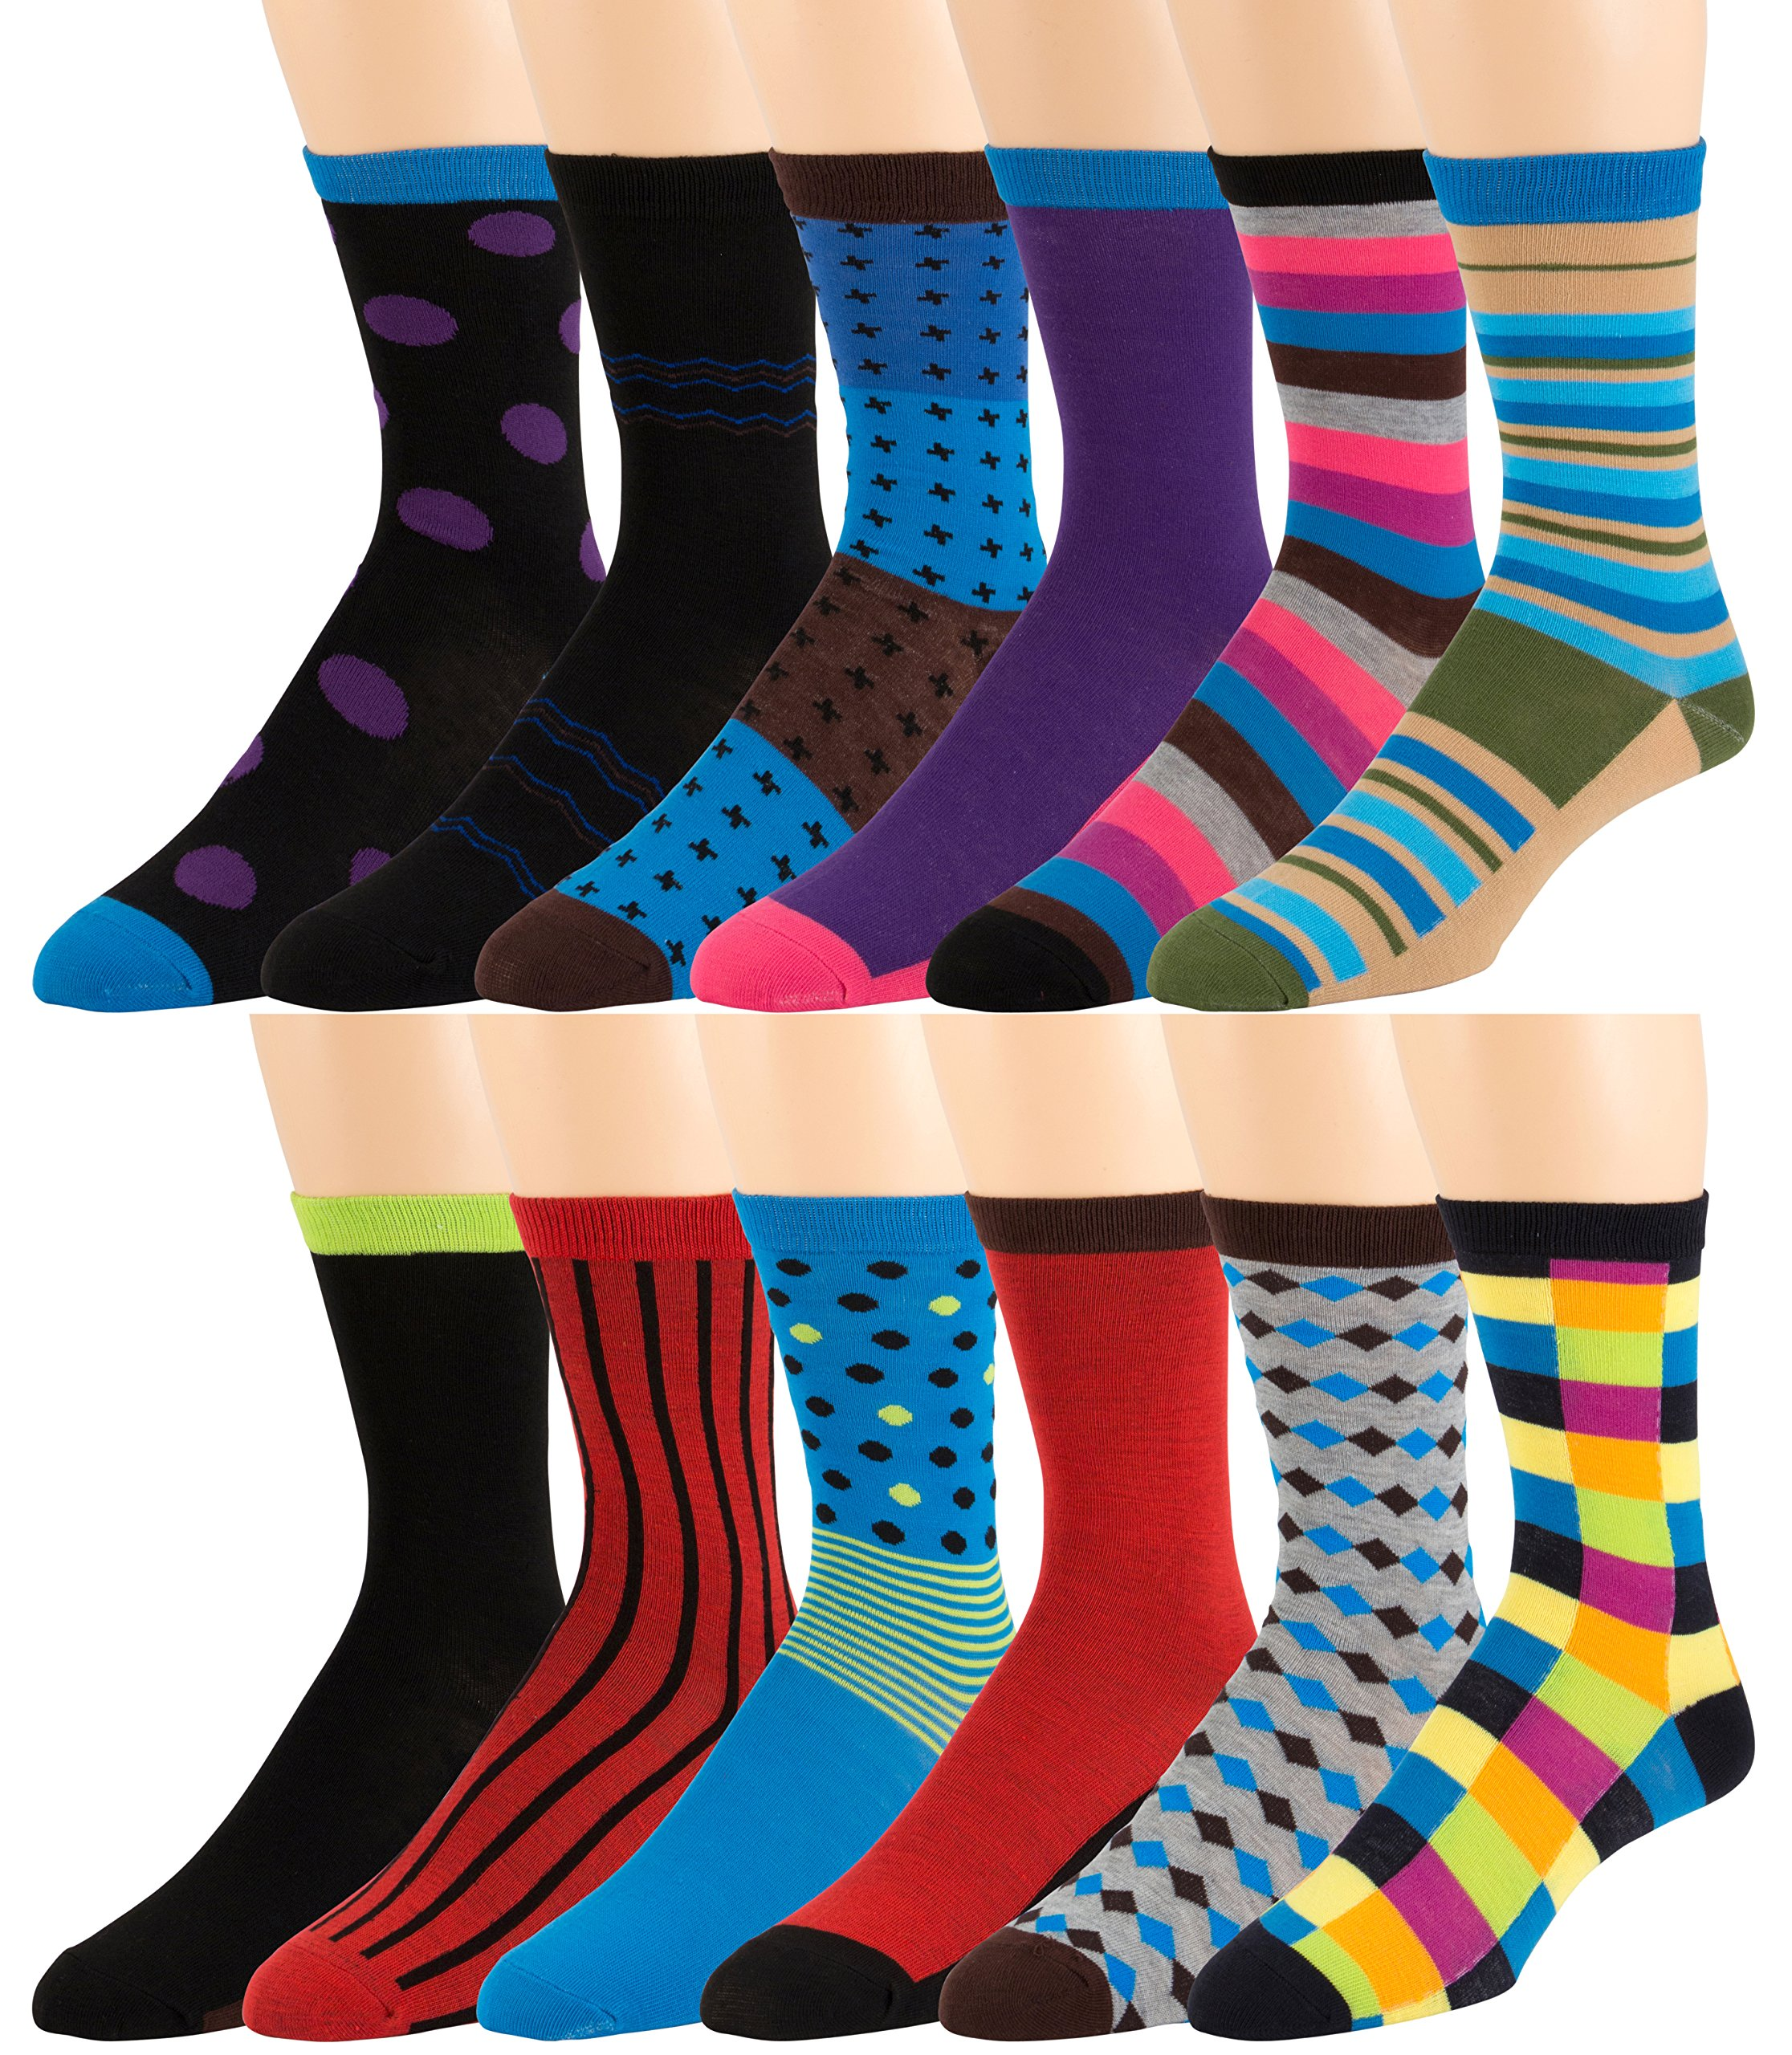 Men's Pattern Dress Funky Fun Colorful Socks 12 Assorted Patterns, Fits Shoe Size 6-12